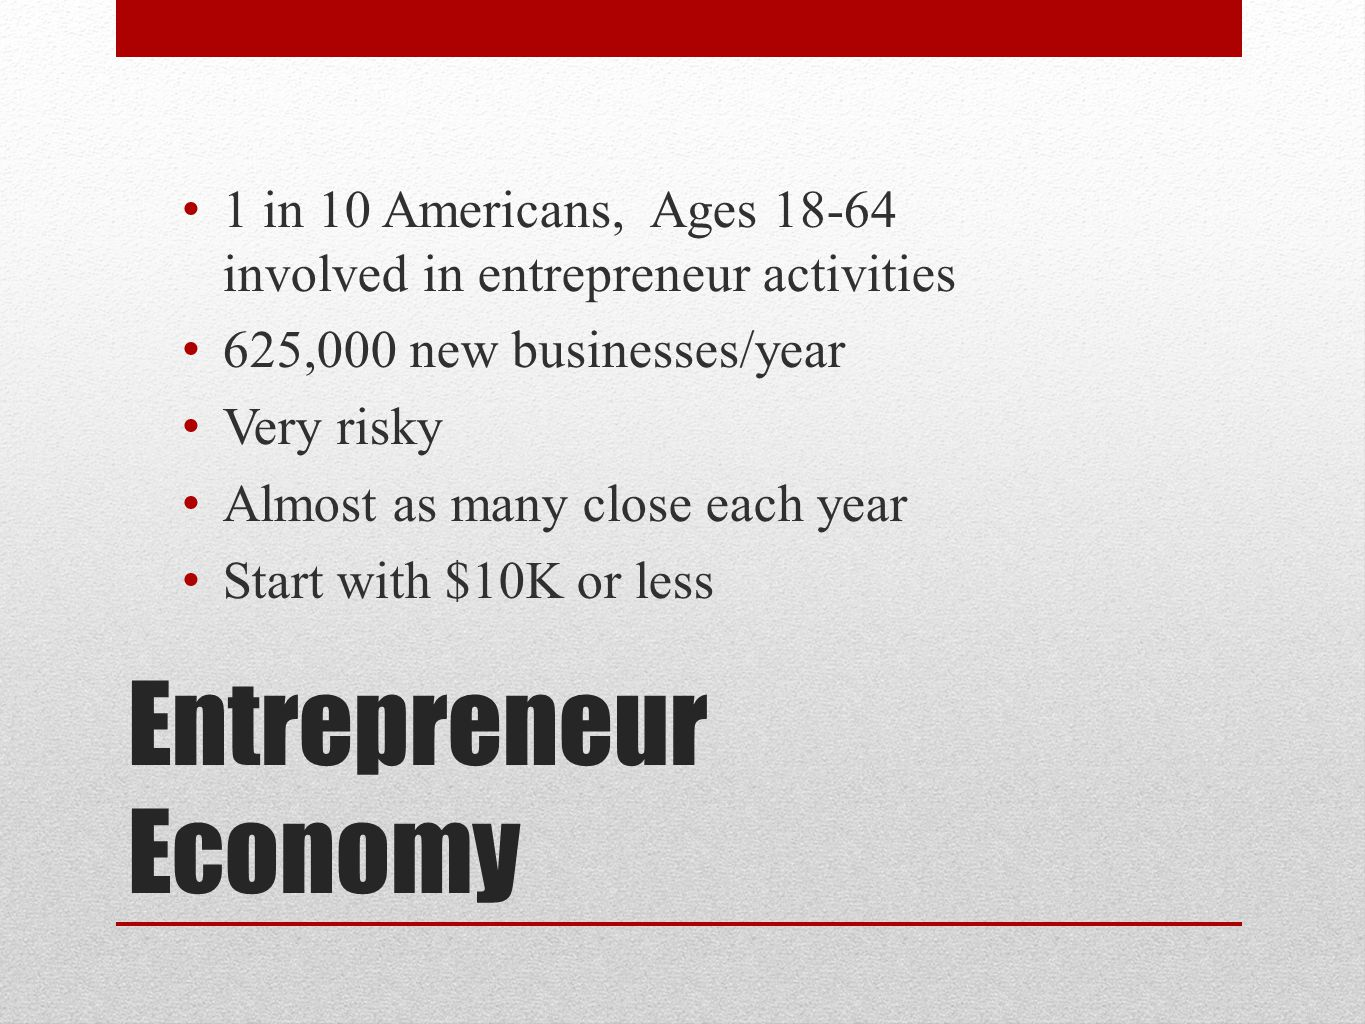 Entrepreneur Economy 1 in 10 Americans, Ages 18-64 involved in entrepreneur activities 6 25,000 new businesses/year V ery risky A lmost as many close each year S tart with $10K or less